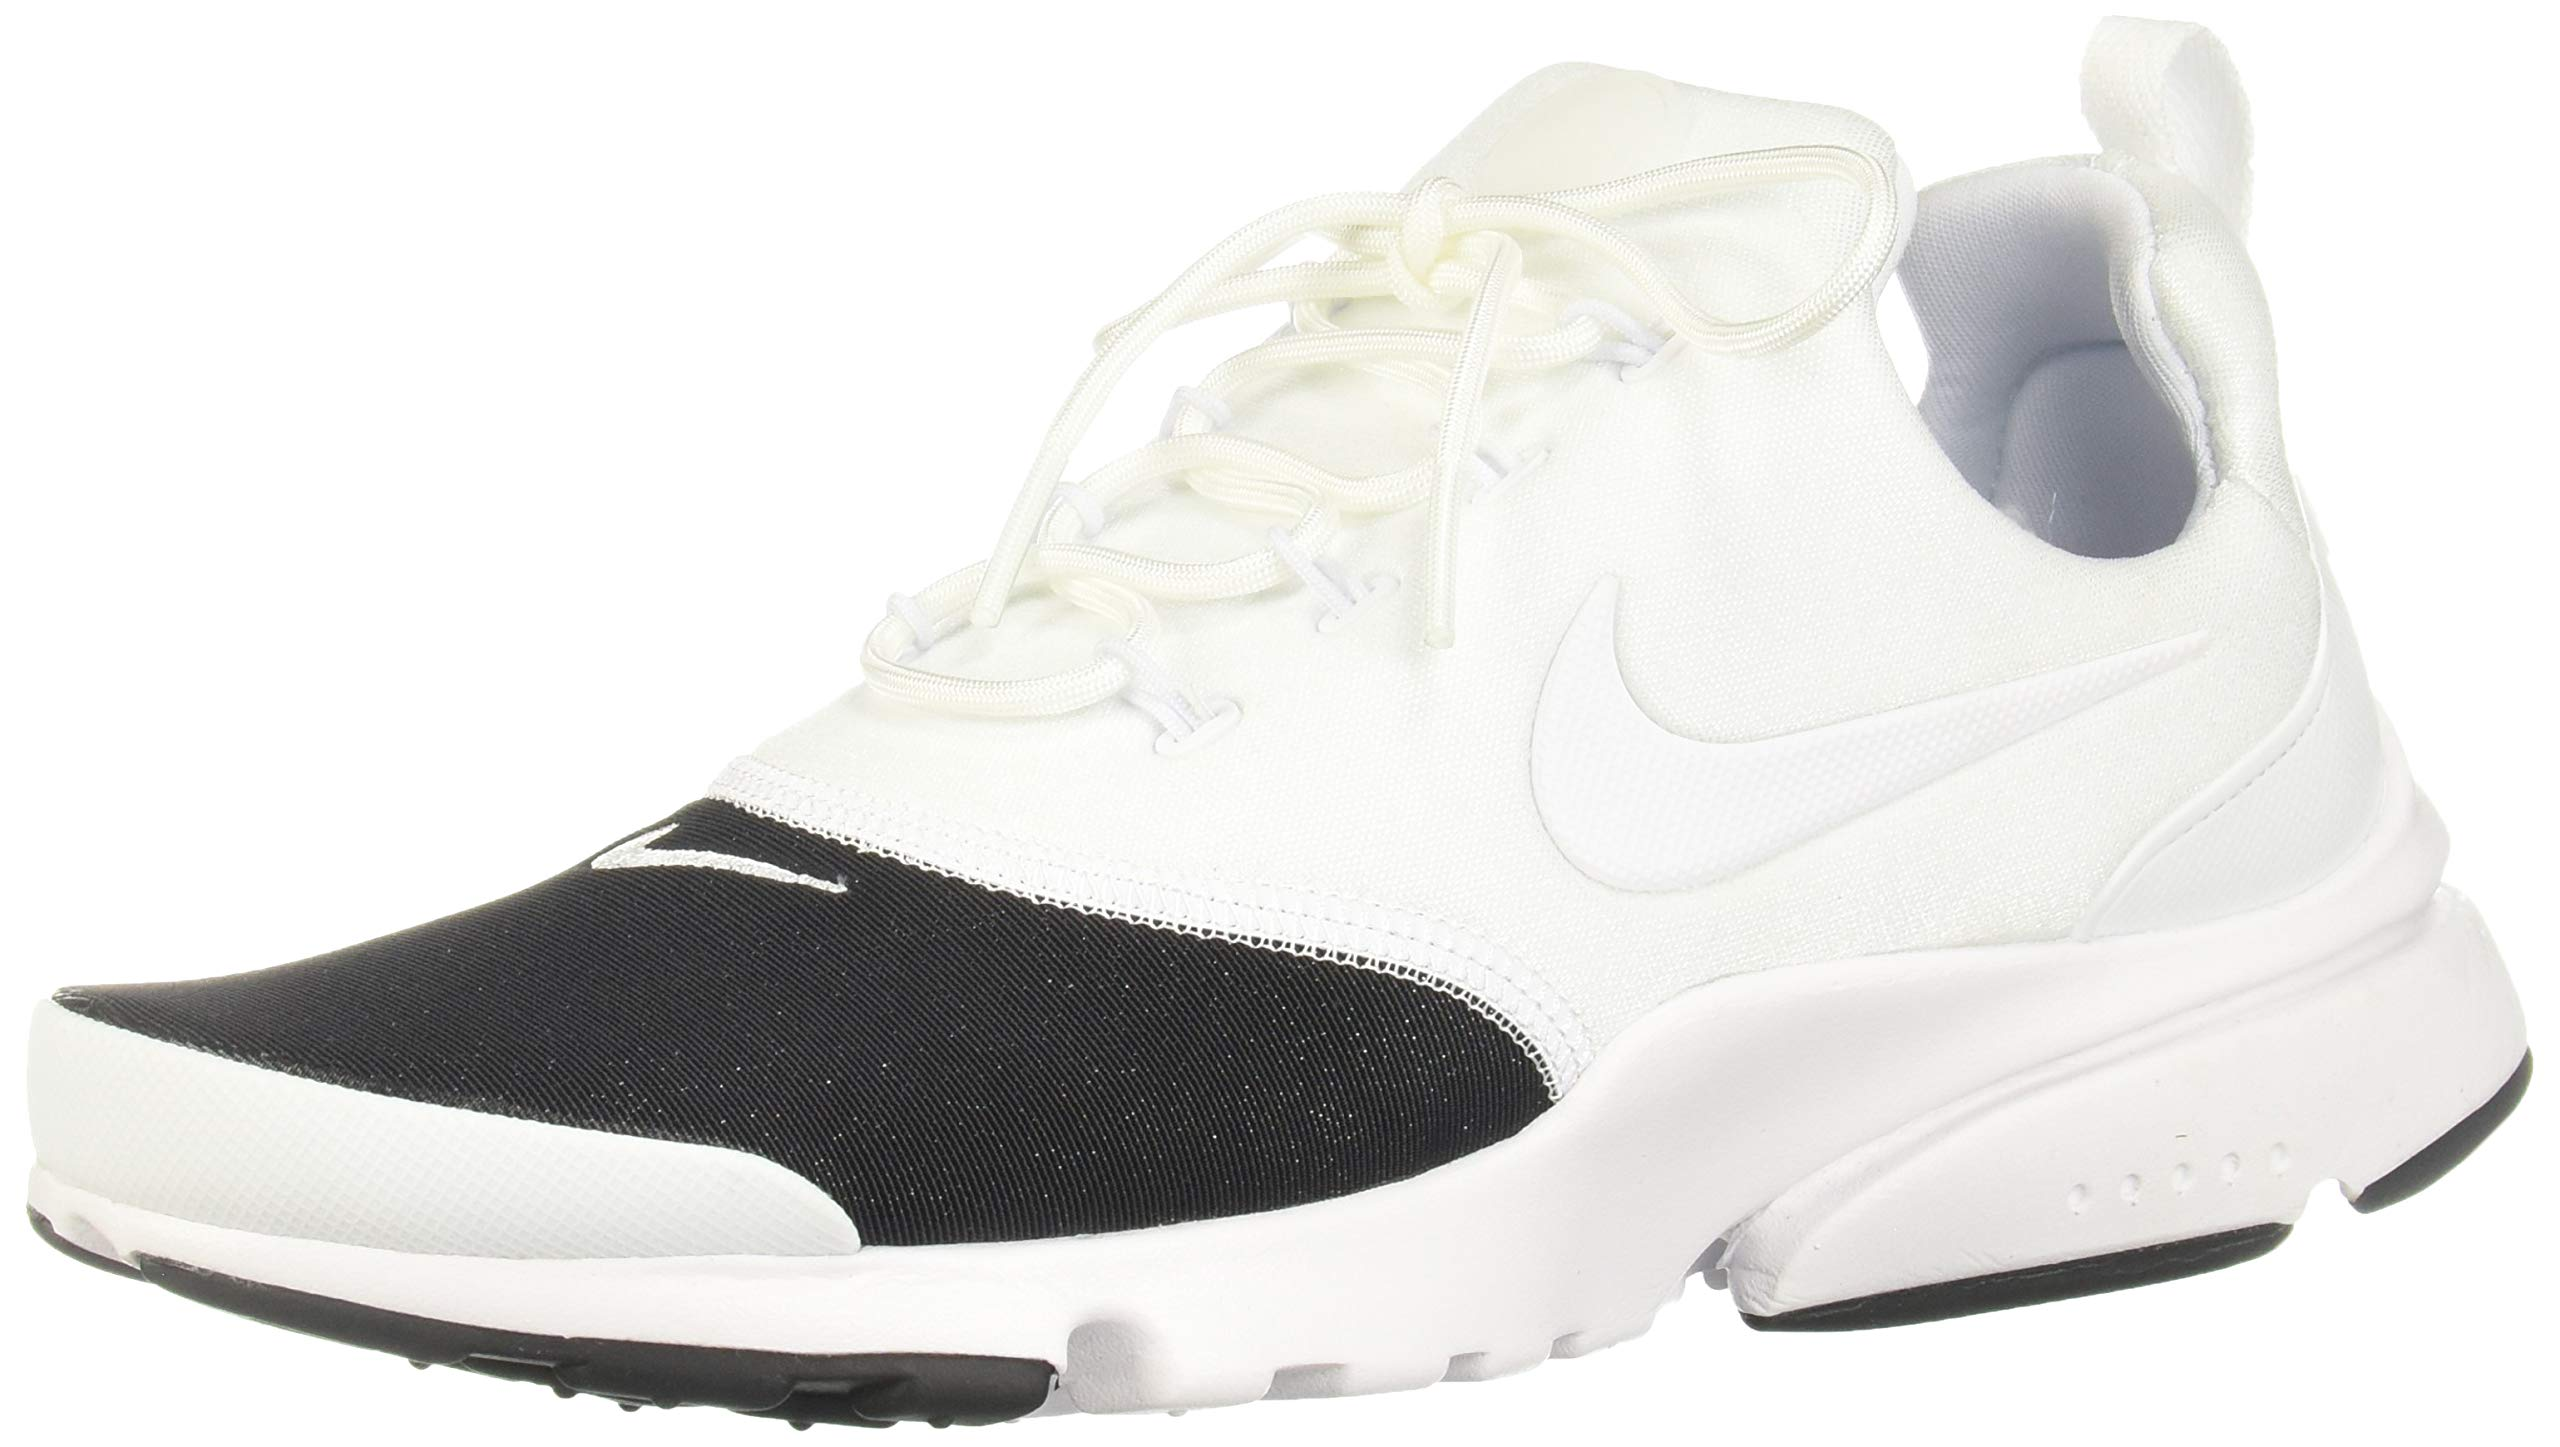 the latest 07930 88ddb Galleon - Nike Women s Air Presto Fly PRM White Black AO3156-100 (Size  9)